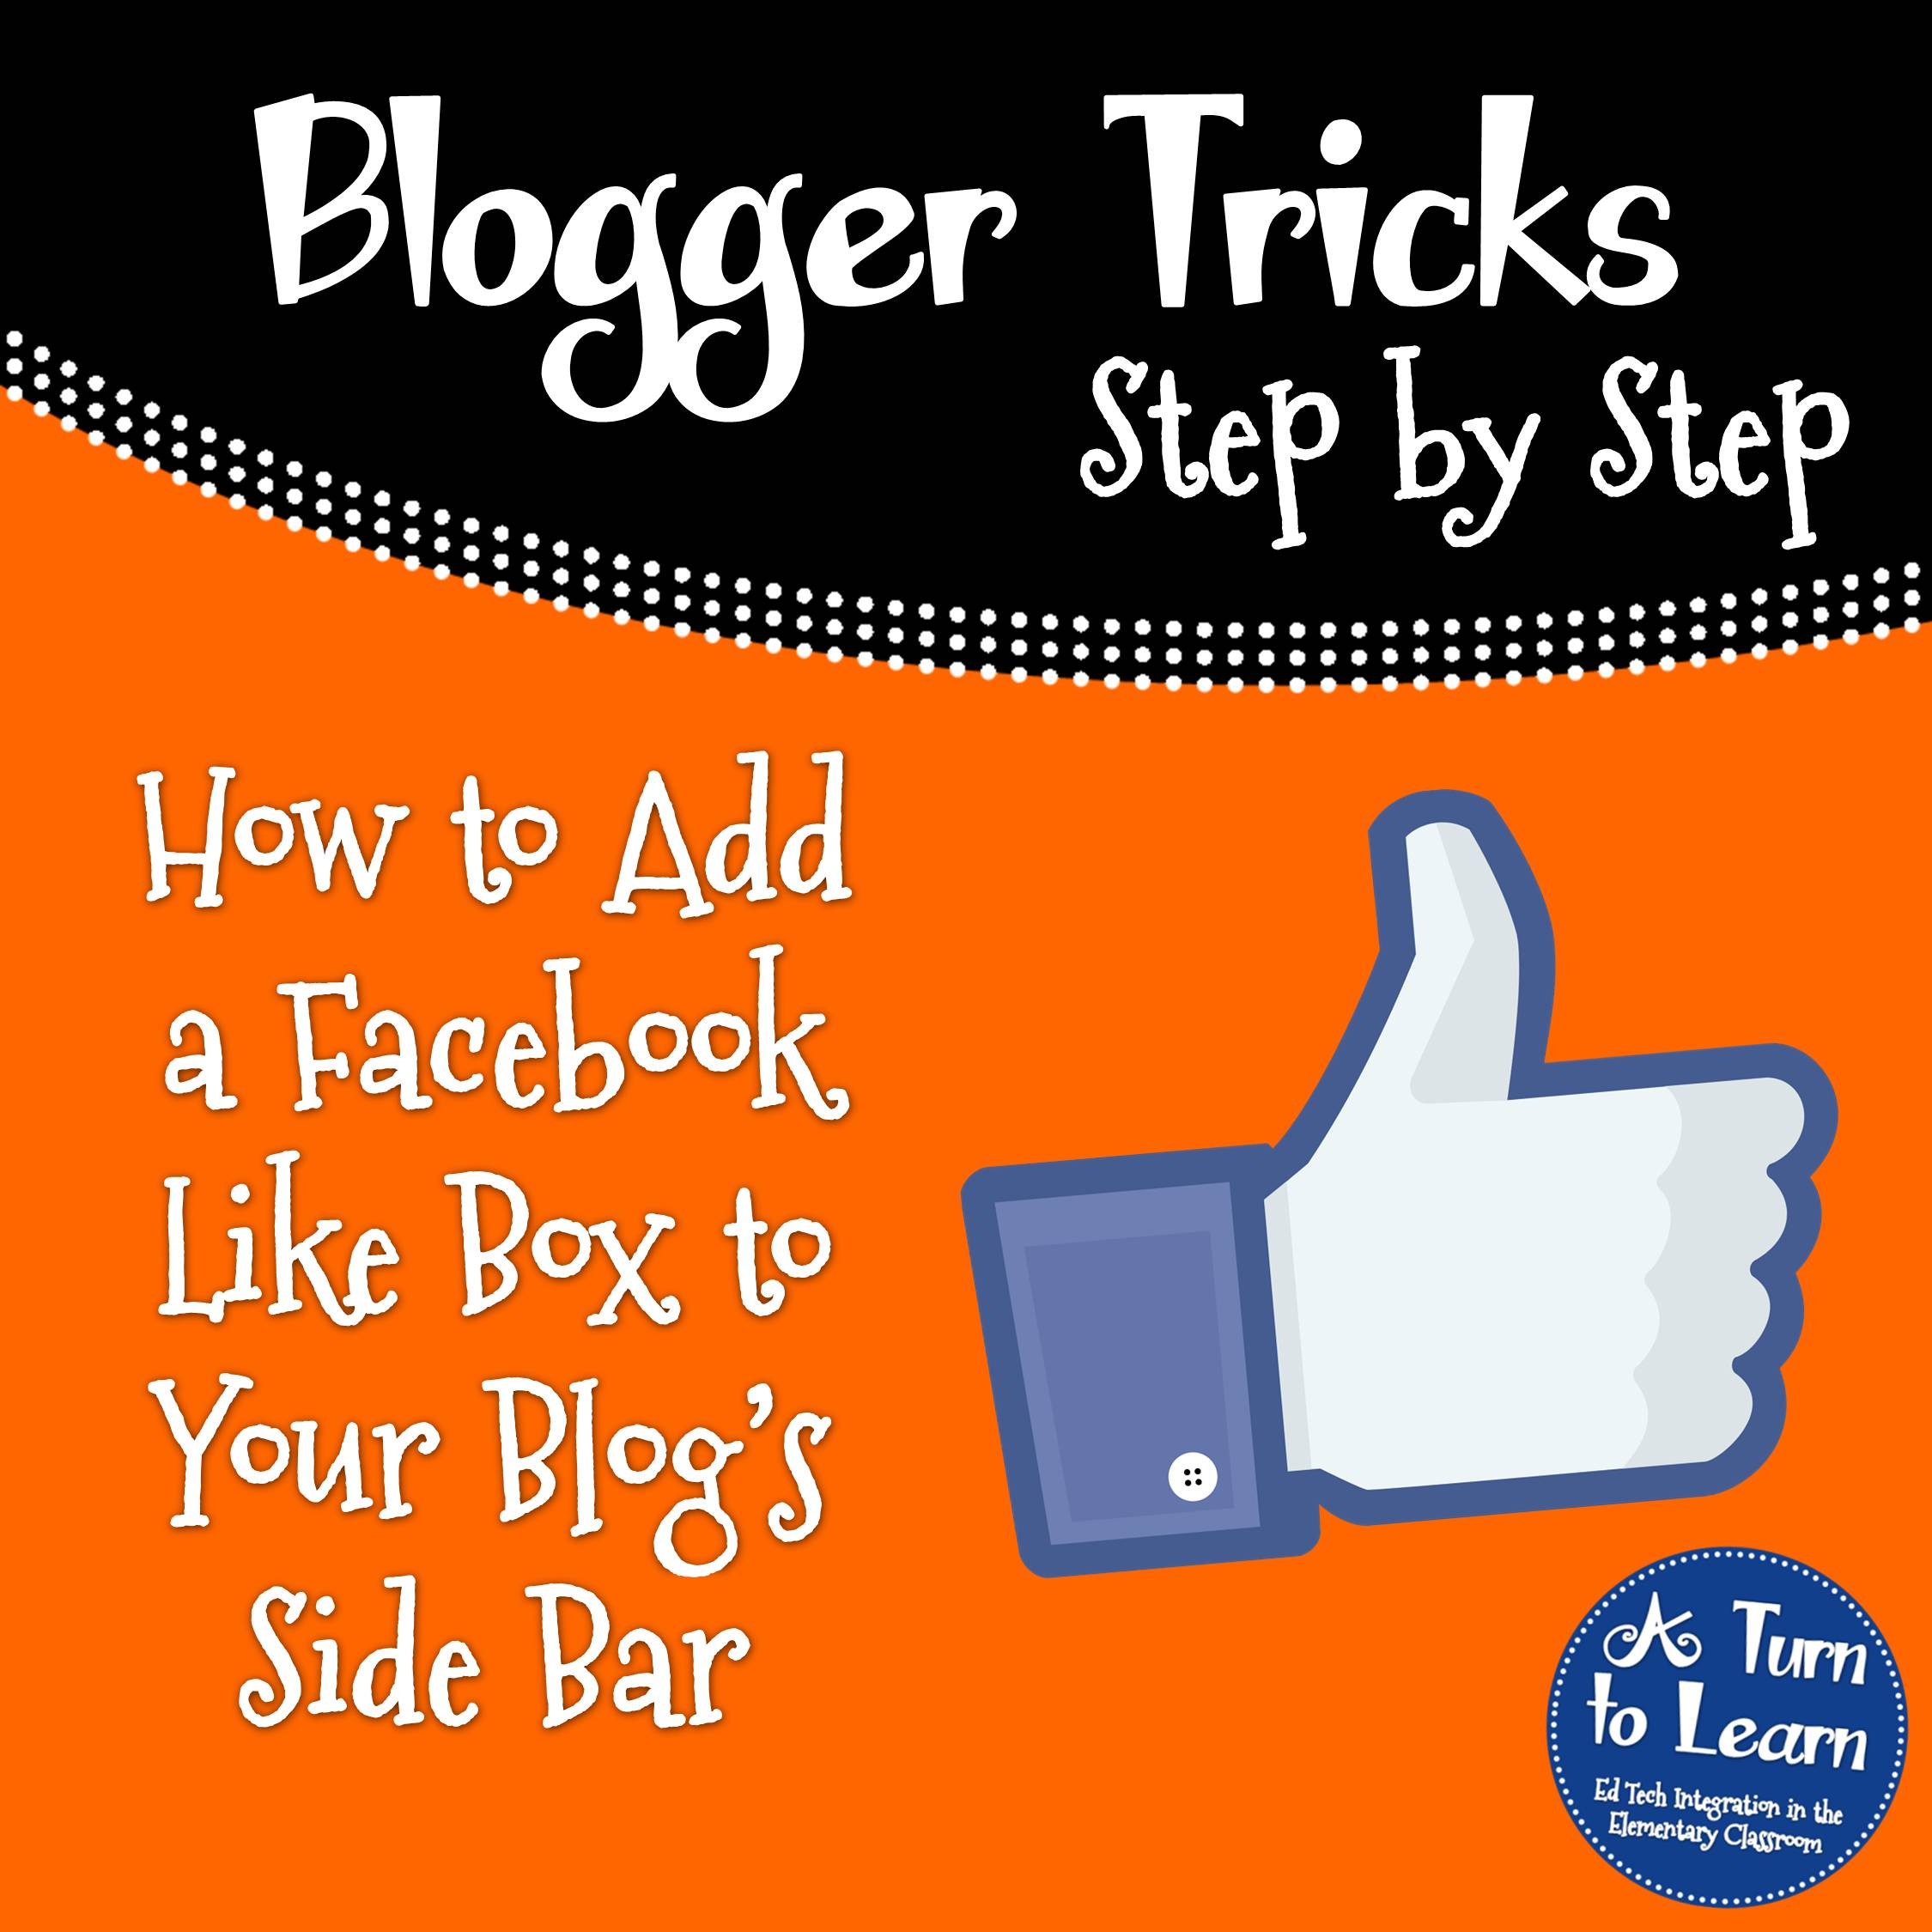 How to Add a Facebook Like Box to Your Blog's Side Bar